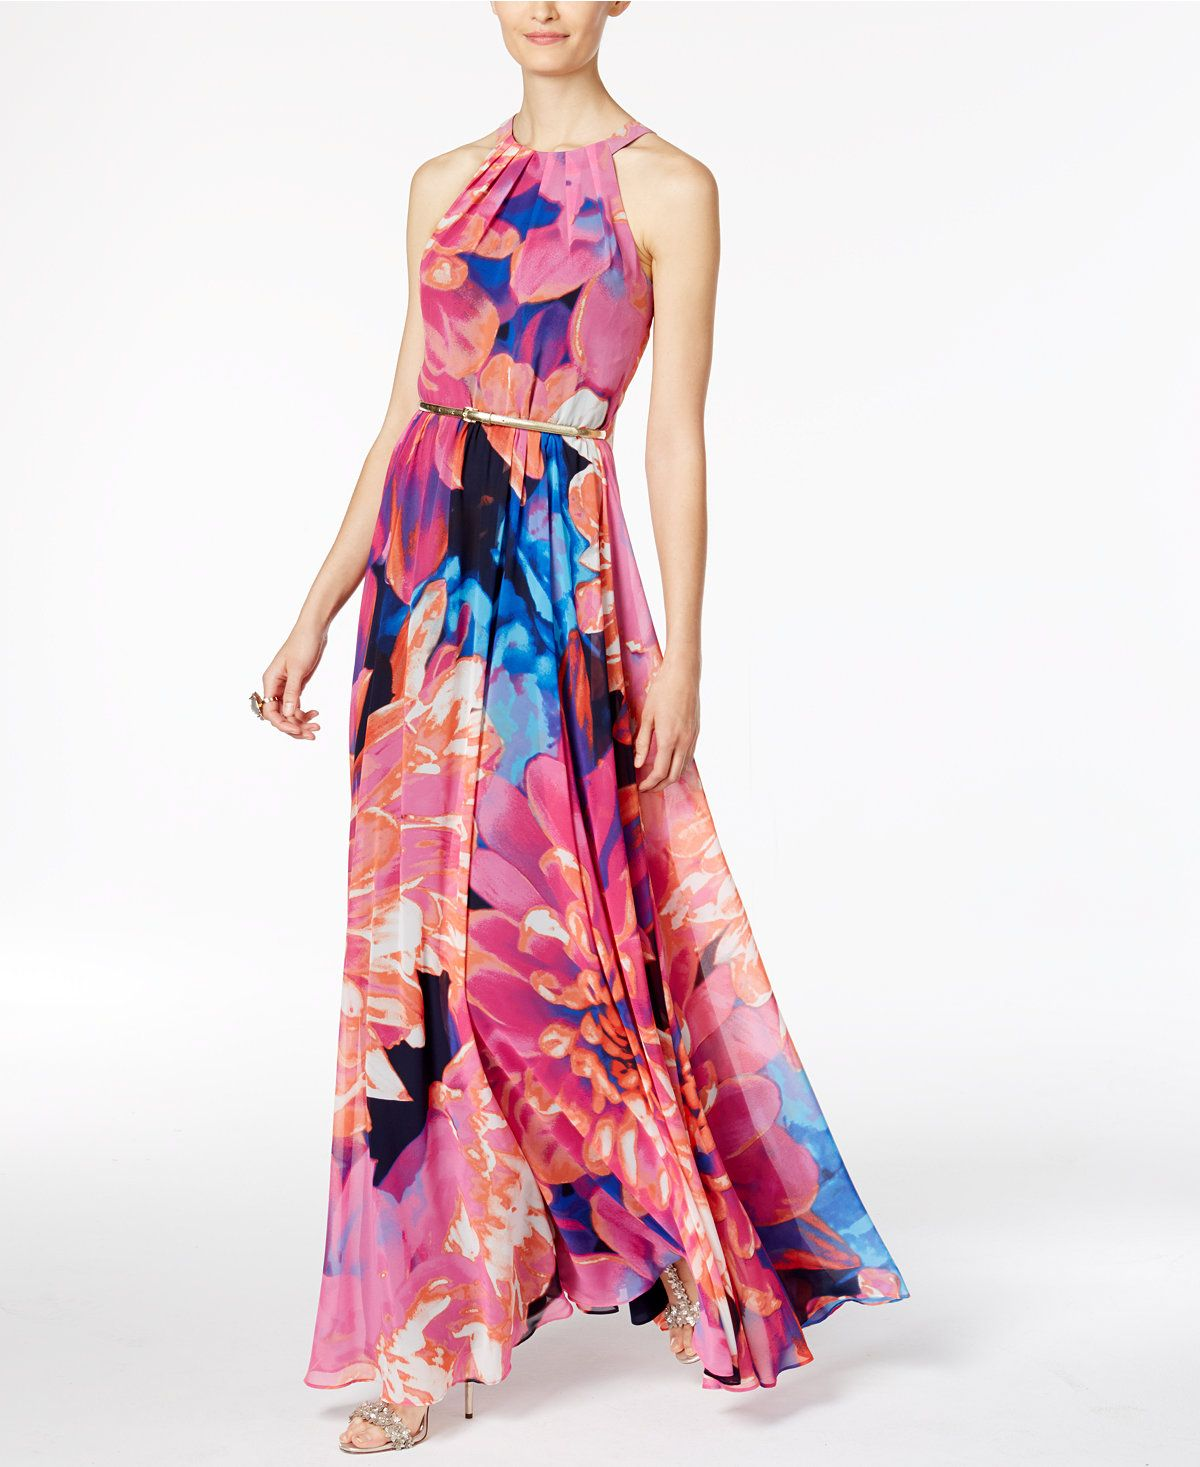 Popular Clearance Eastbay Only Printed Maxi Dress Women 100% Guaranteed Cheap Online Free Shipping Low Shipping Fee Up0Jv